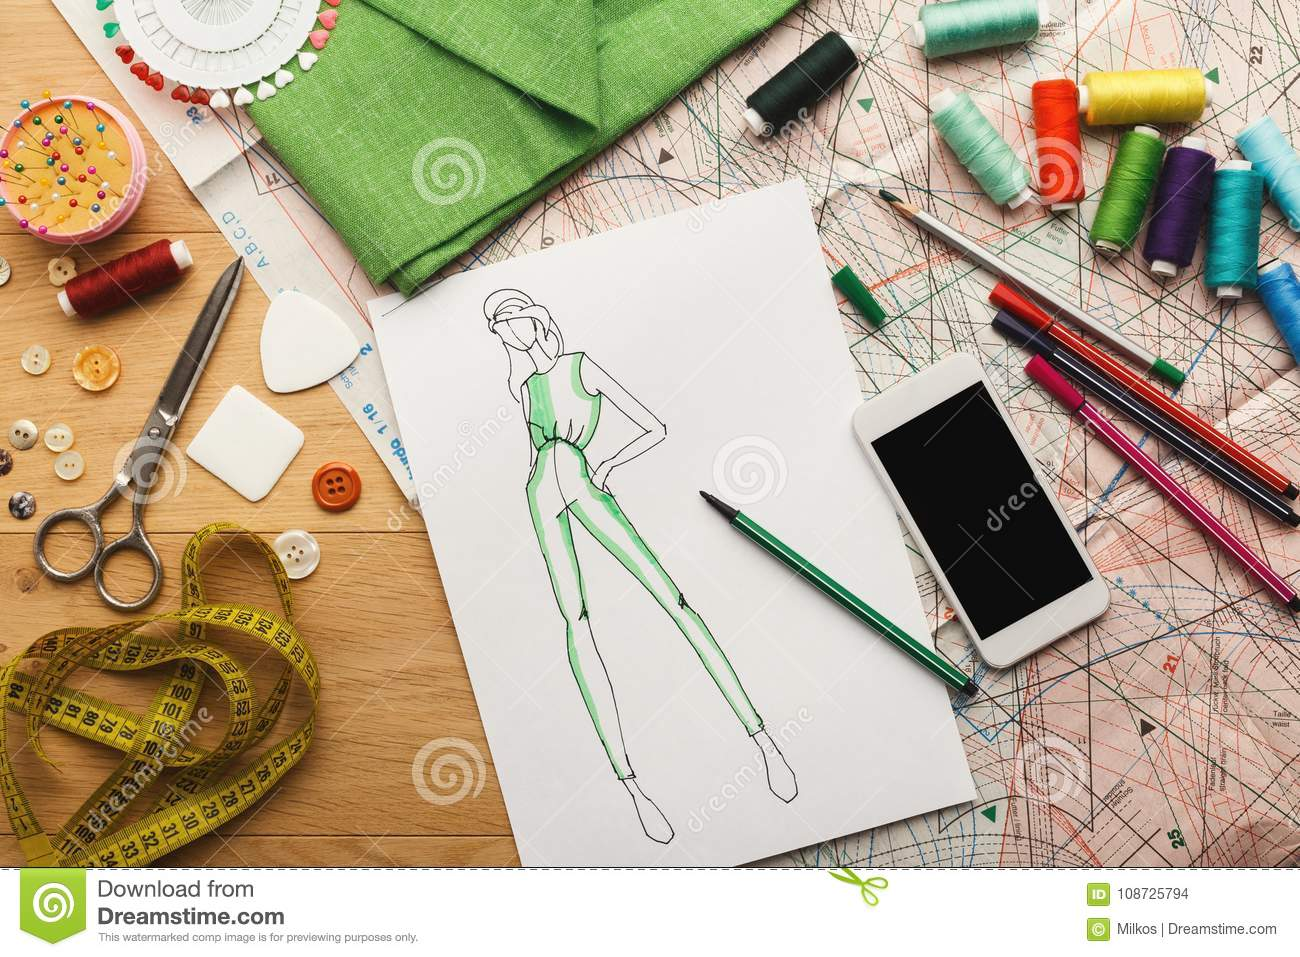 946cf4a36538d Creating new fashion collection background. Hand drawn sketches of clothes